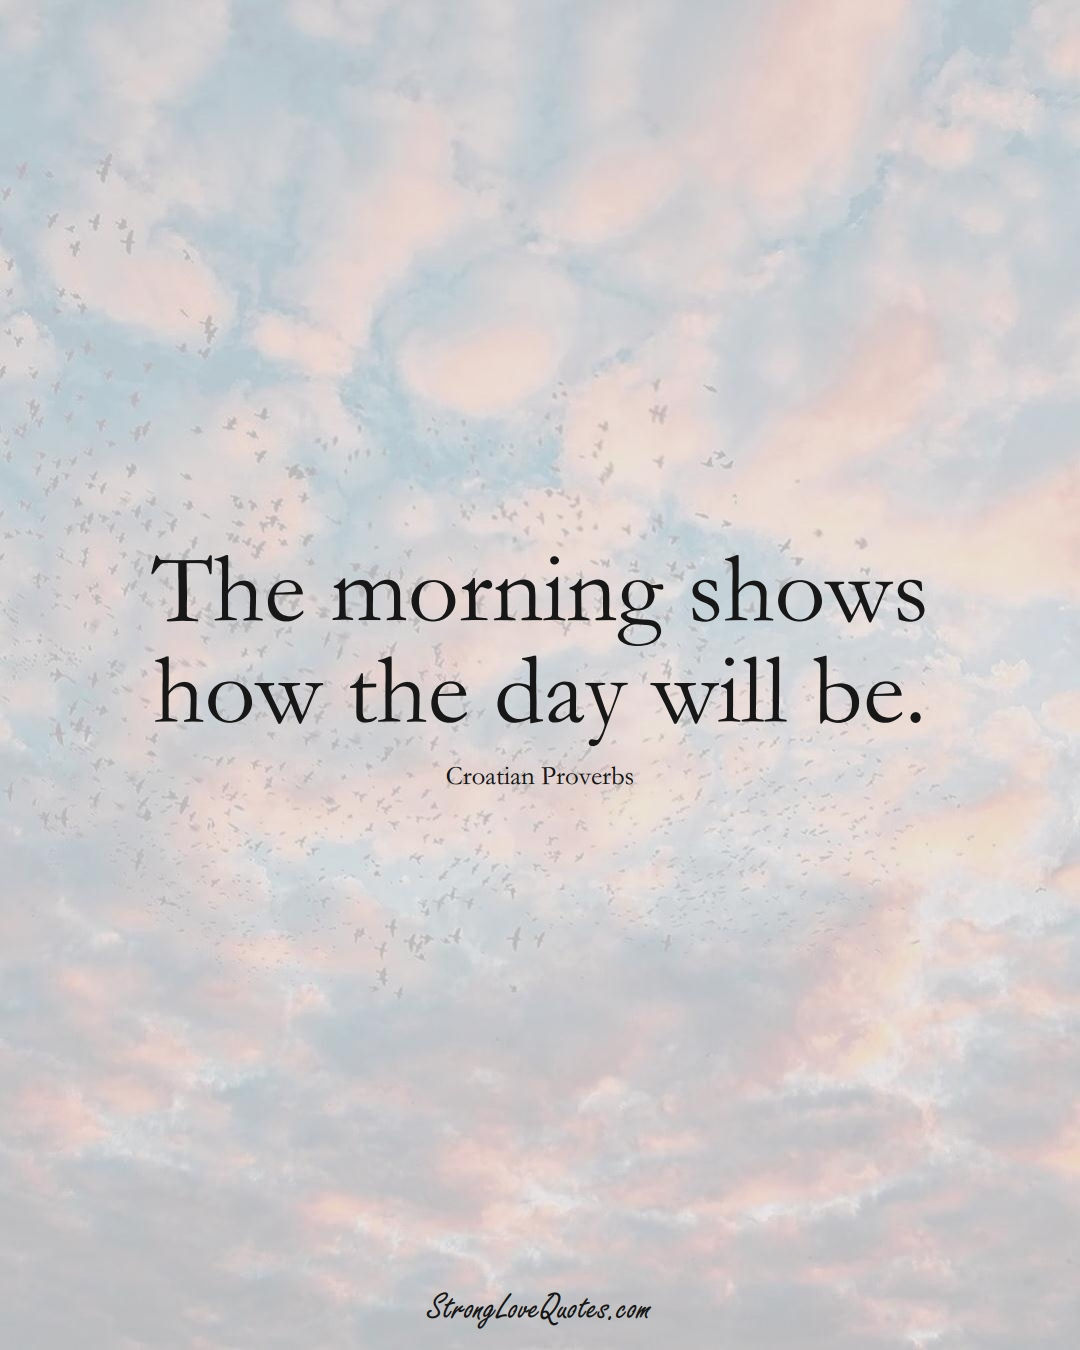 The morning shows how the day will be. (Croatian Sayings);  #EuropeanSayings